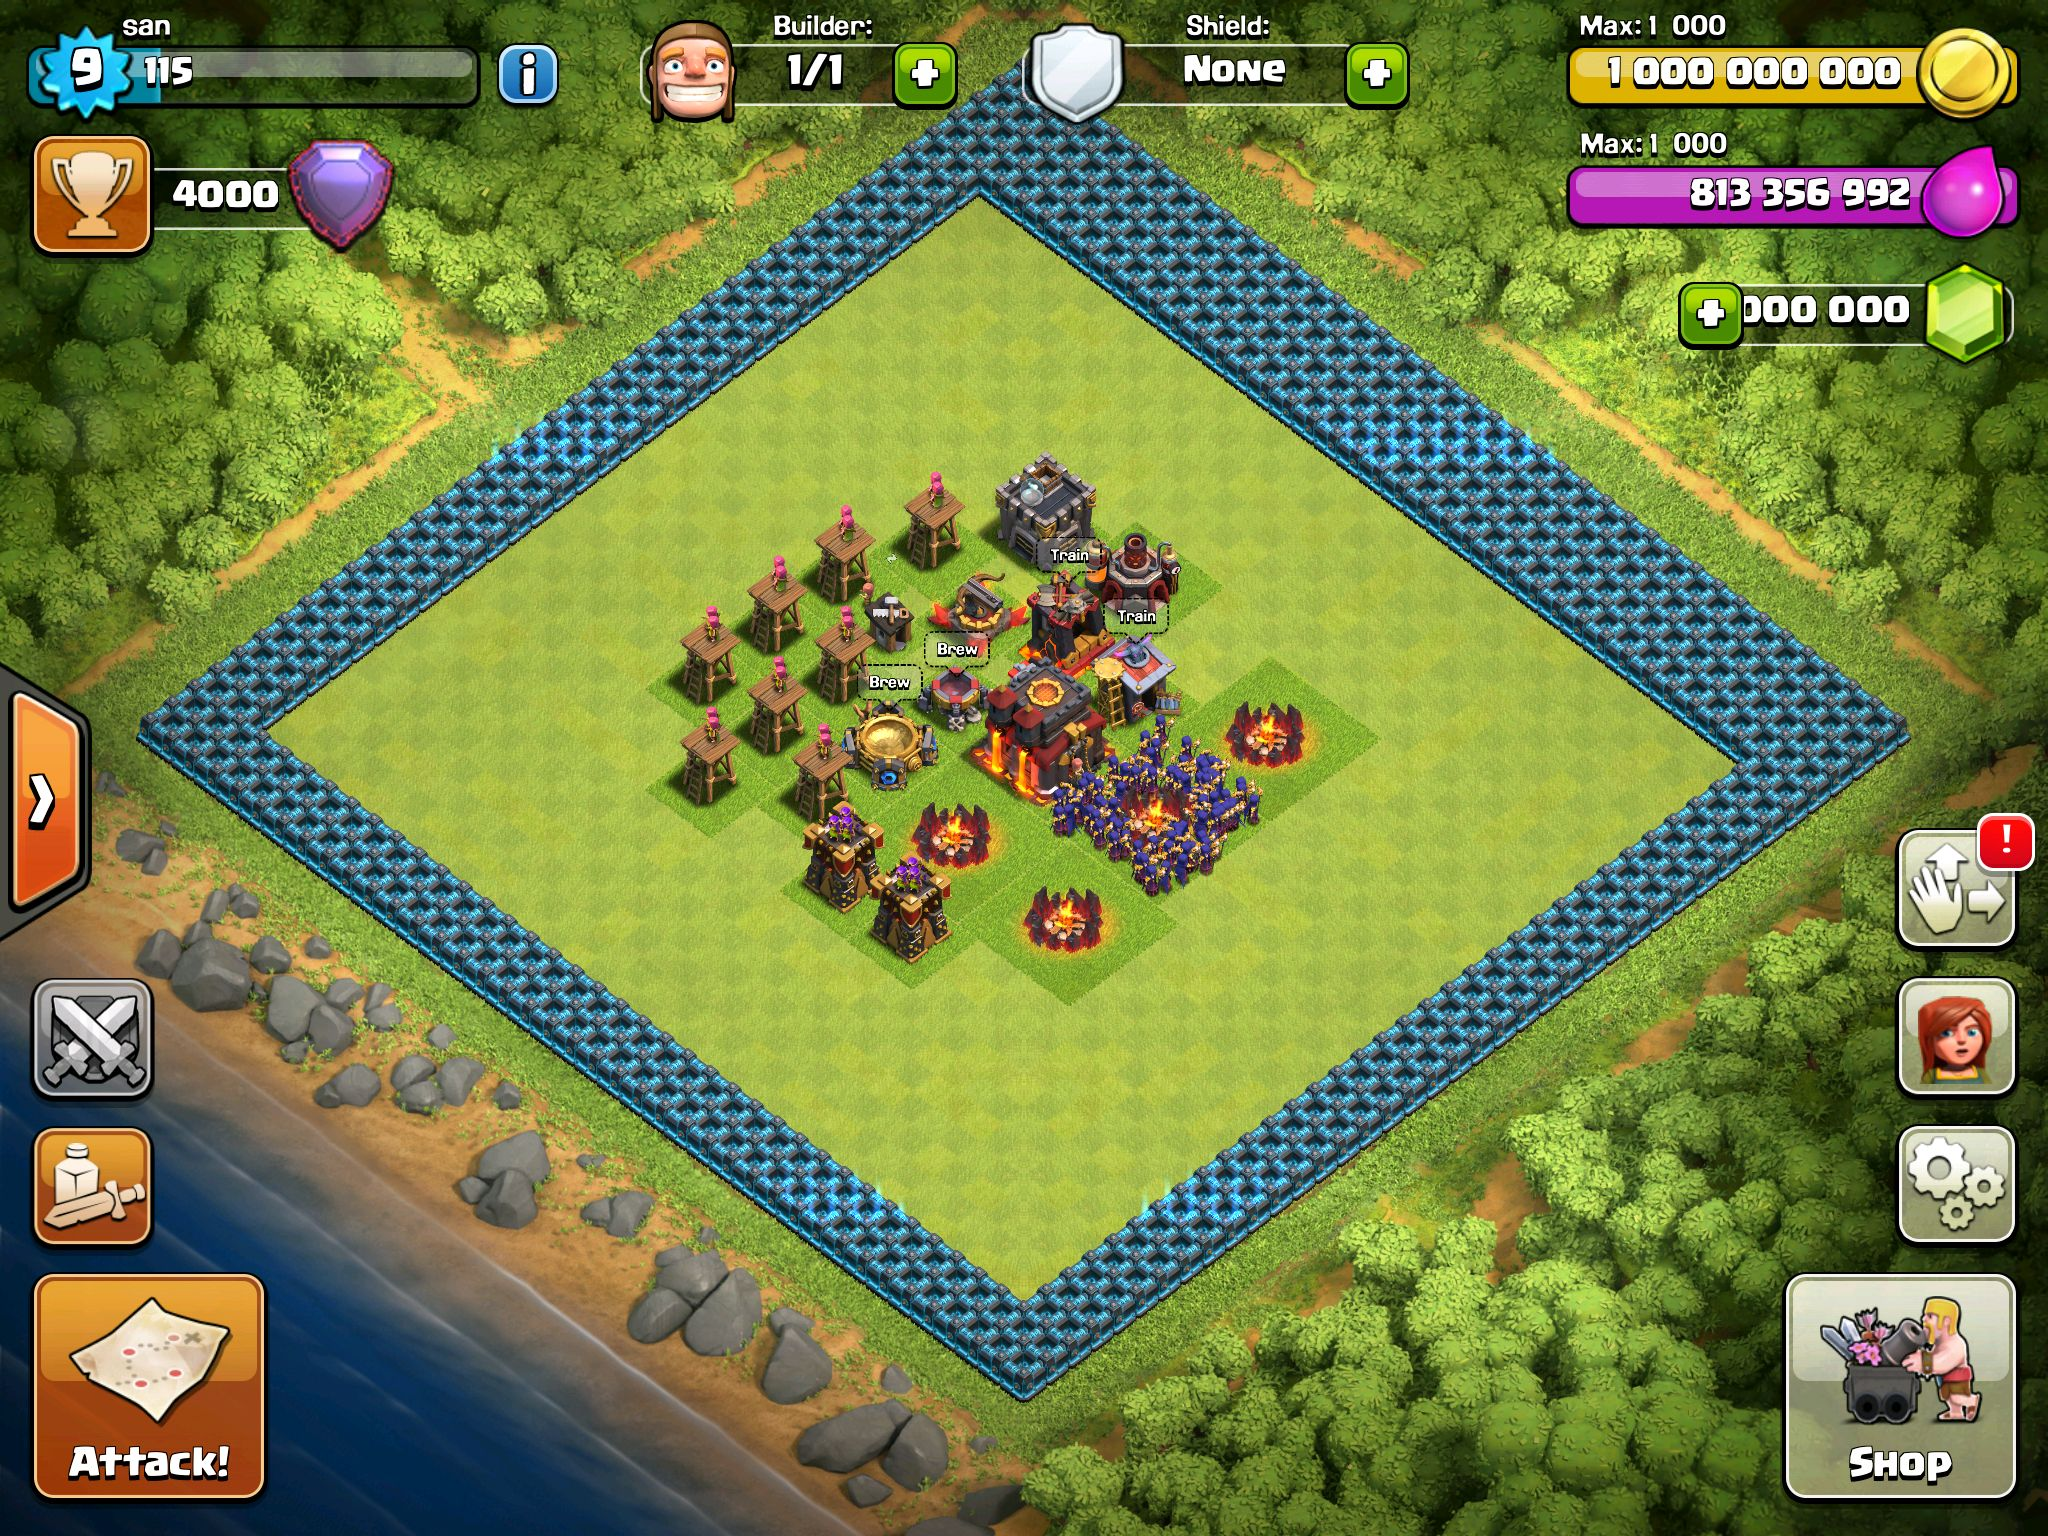 I'm hacking clash of clans